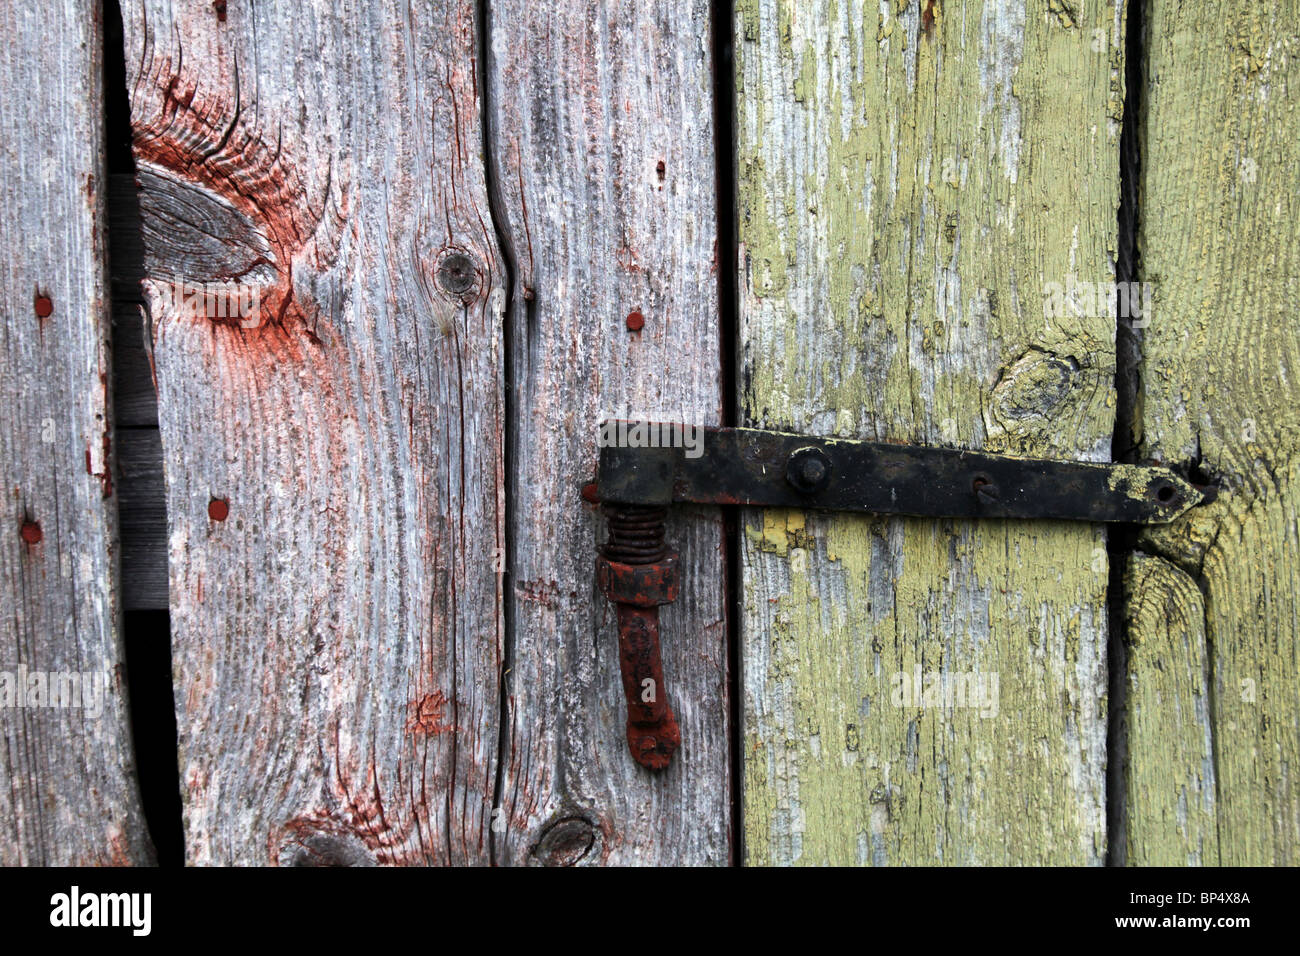 Traditional Nordic shed outhouse with odd shaped door detail flaking old paint Aland archipelago Finland & Traditional Nordic shed outhouse with odd shaped door detail flaking ...